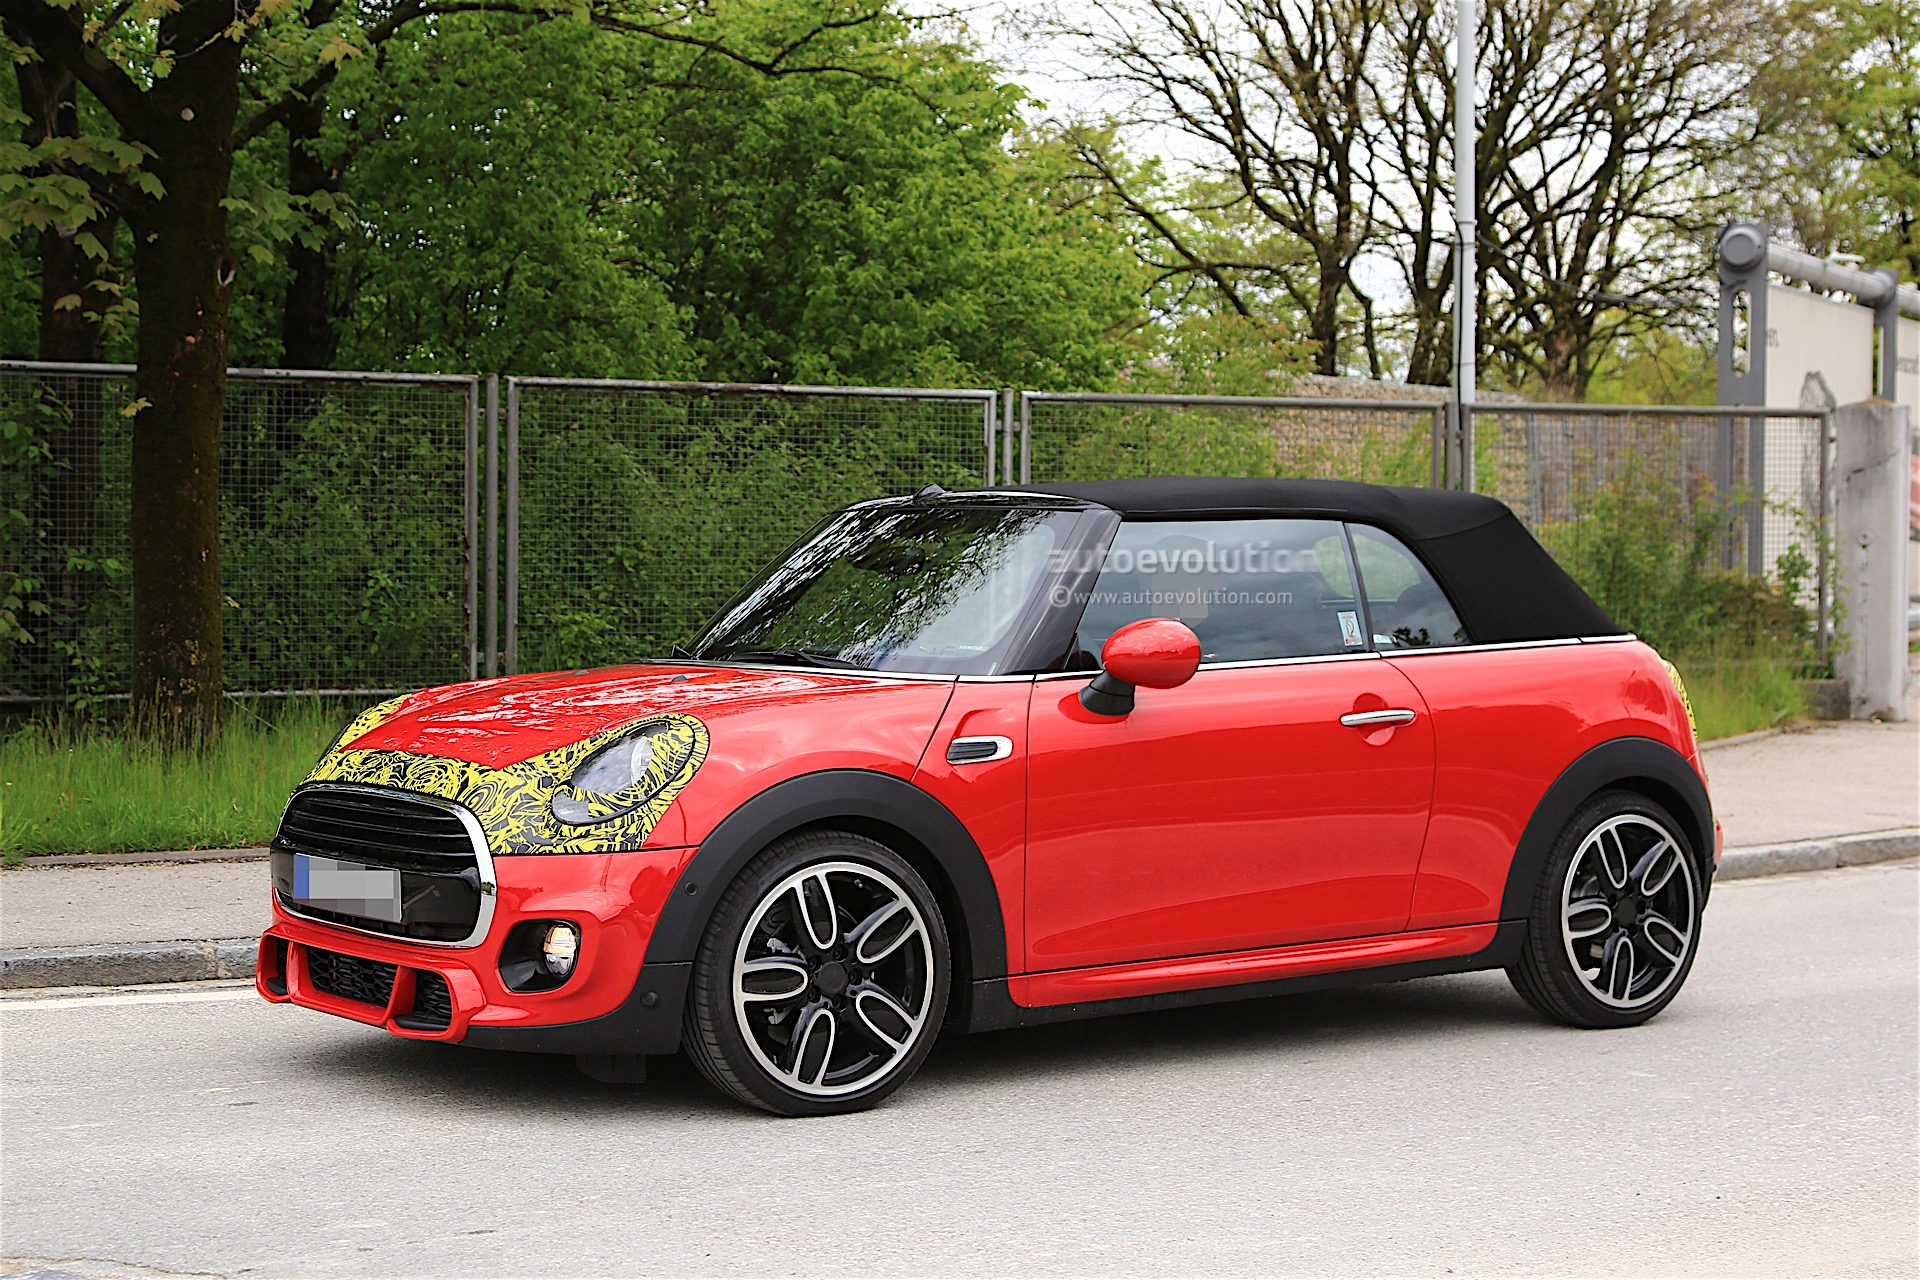 2018 mini cabrio and cooper s facelift spied in germany. Black Bedroom Furniture Sets. Home Design Ideas